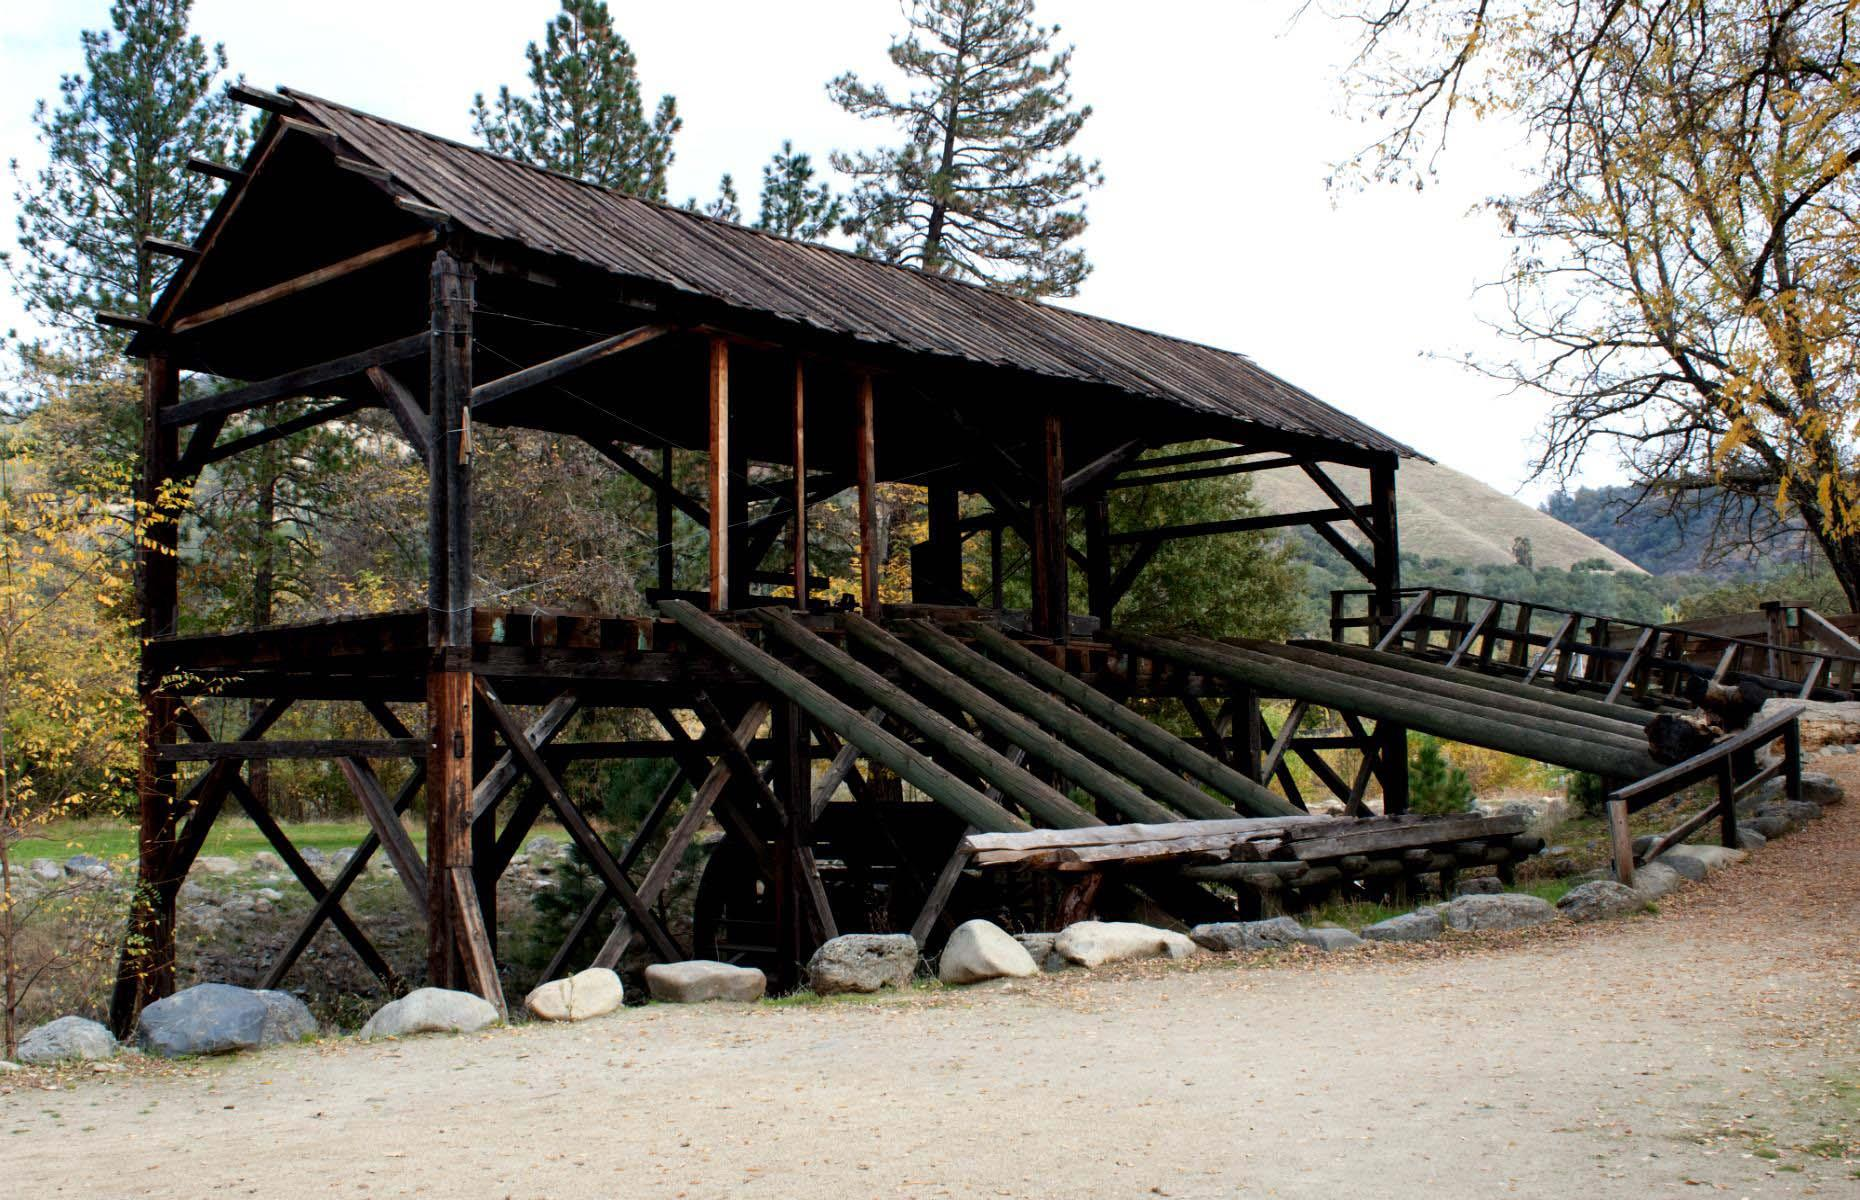 Slide 42 of 46: Between 1847 and 1852 Coloma was an important mining town, but as the gold subsided the population declined, and the town was abandoned. It is still possible to visit the old Sutter's Mill, where the first gold discovery was made and rumor has it there's still plenty of gold left in the hills.